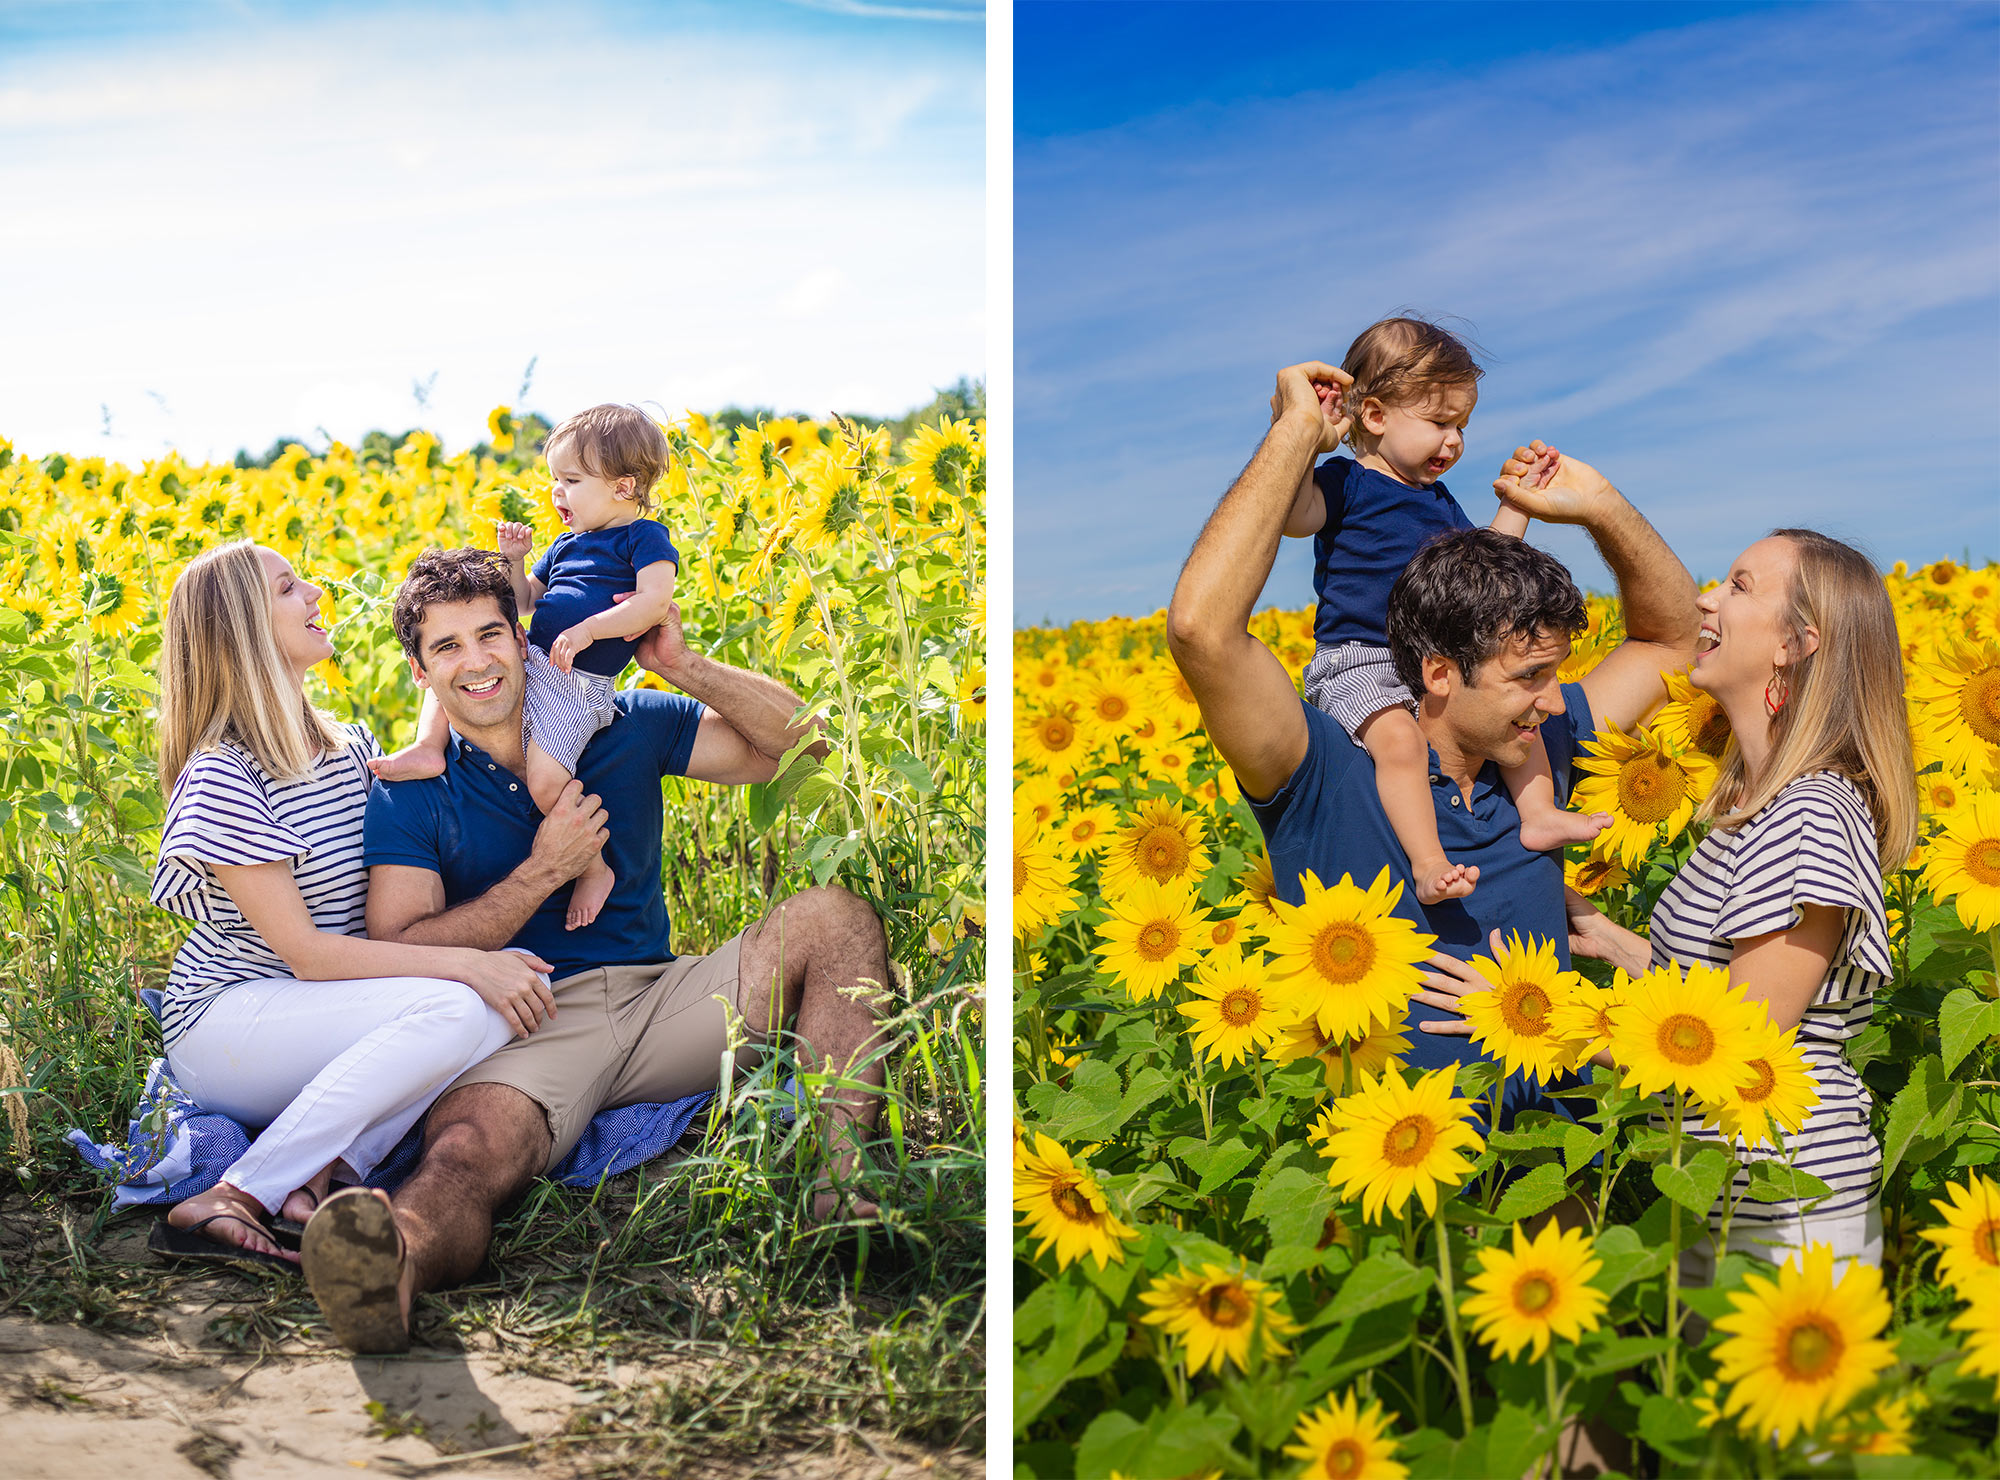 Peabody Family Portrait Photographer | Stephen Grant Photography